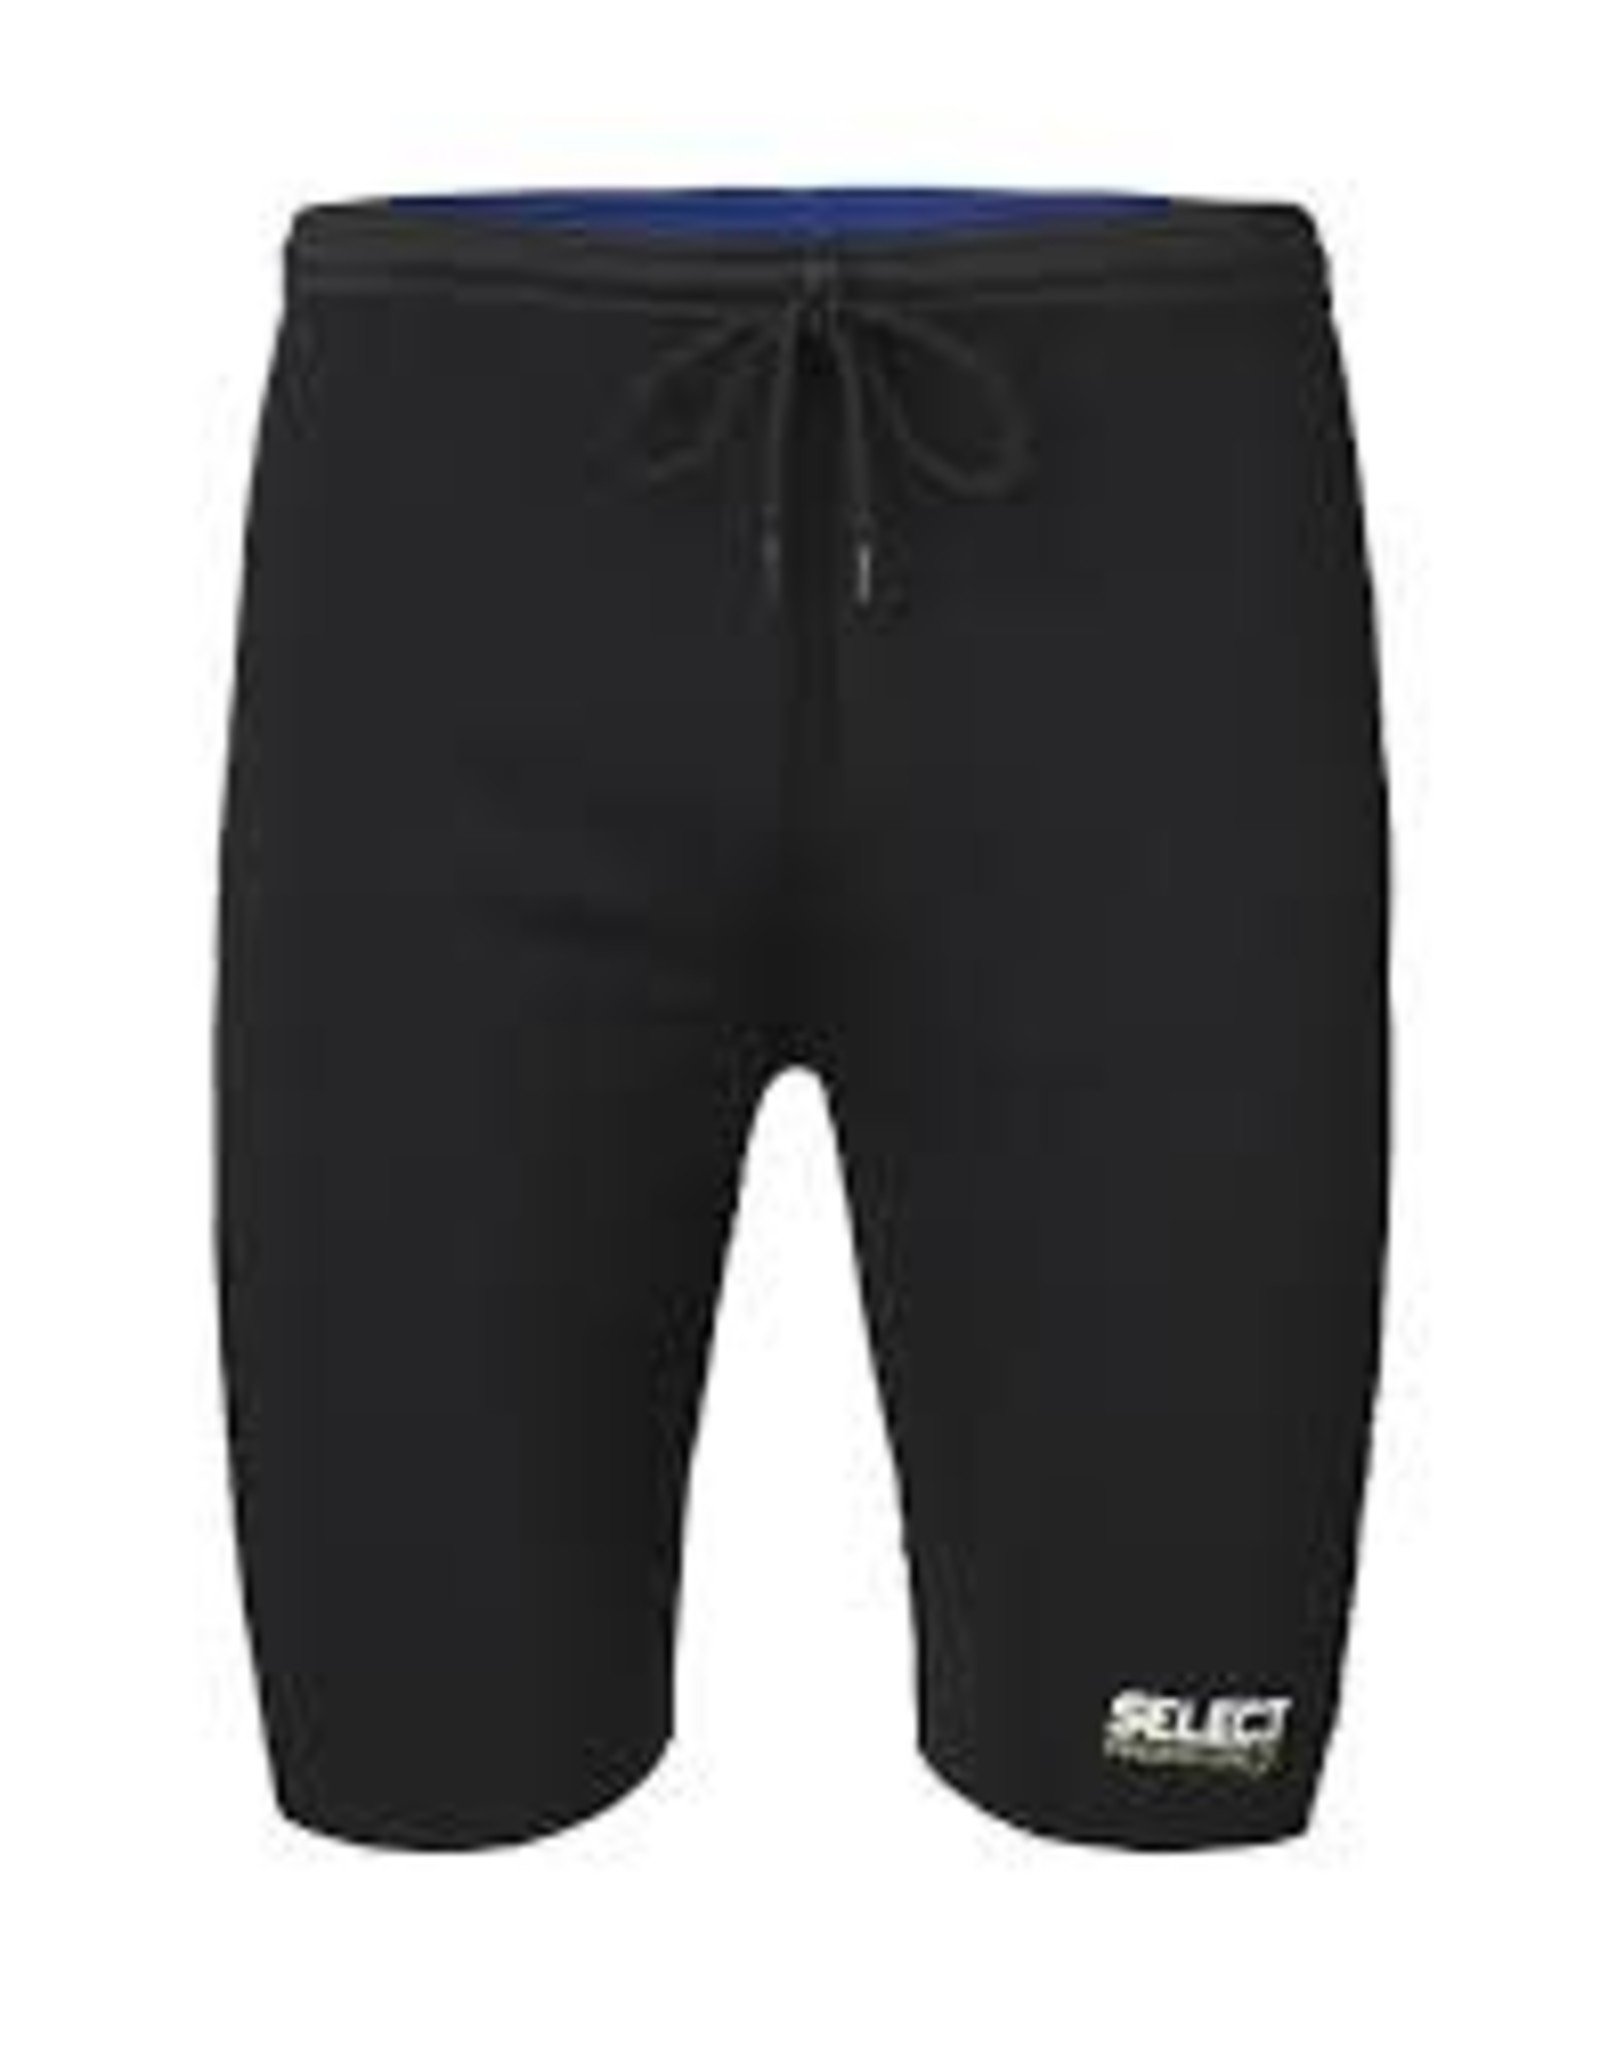 Select thermal trouser